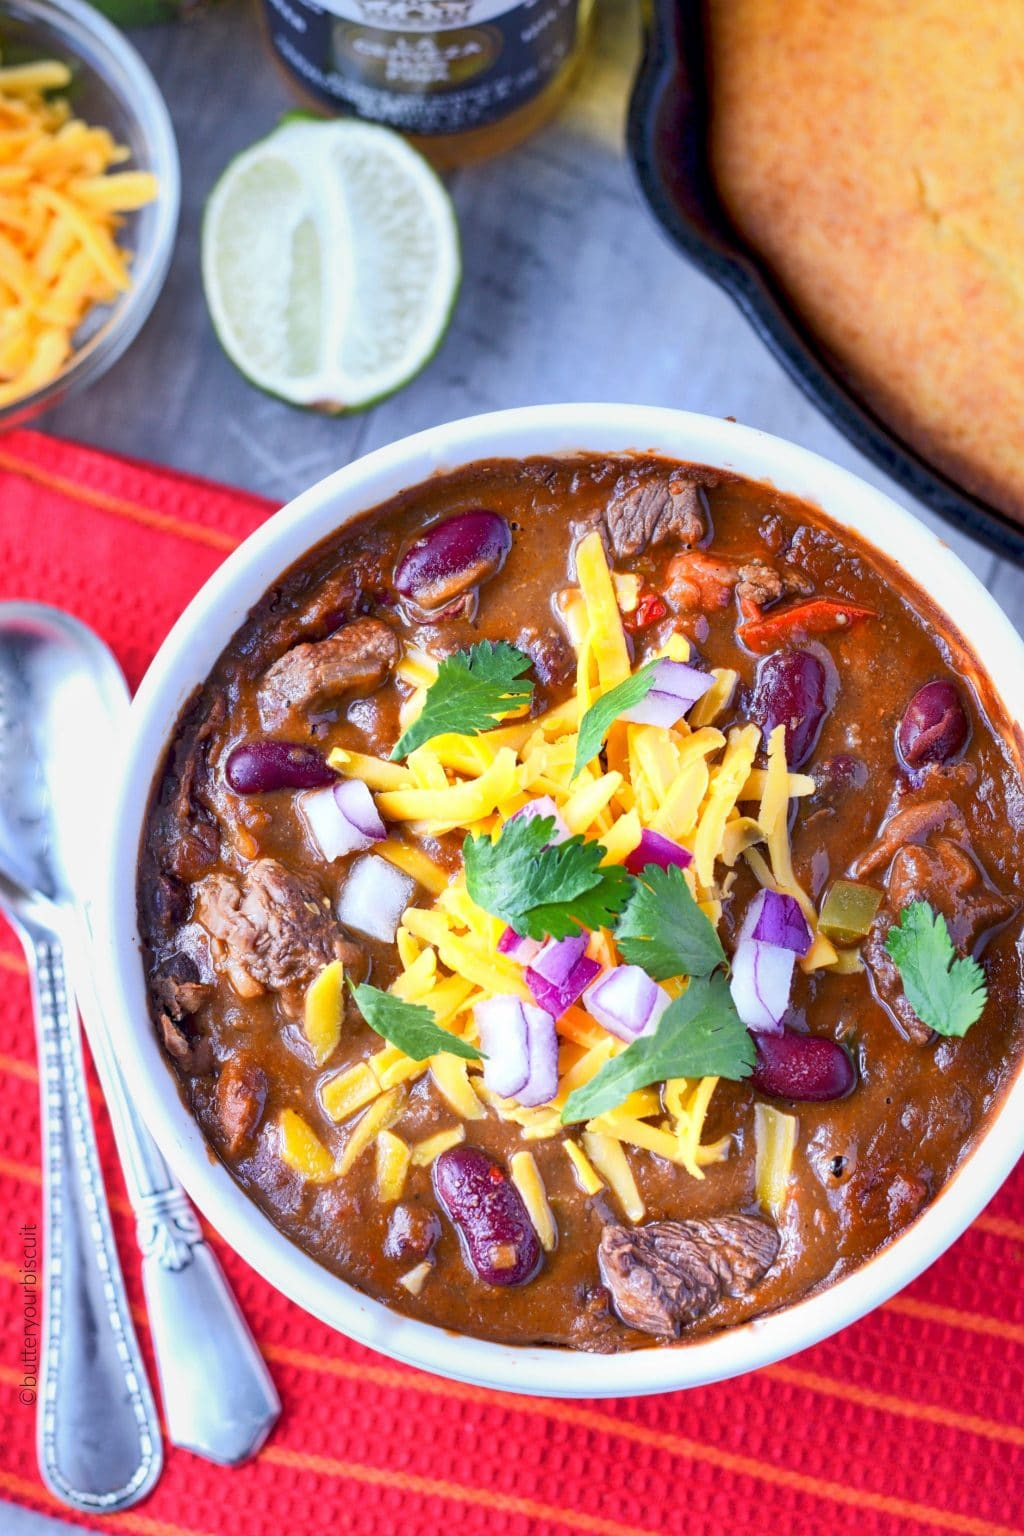 Ribeye steak chili in a white bowl with cornbread